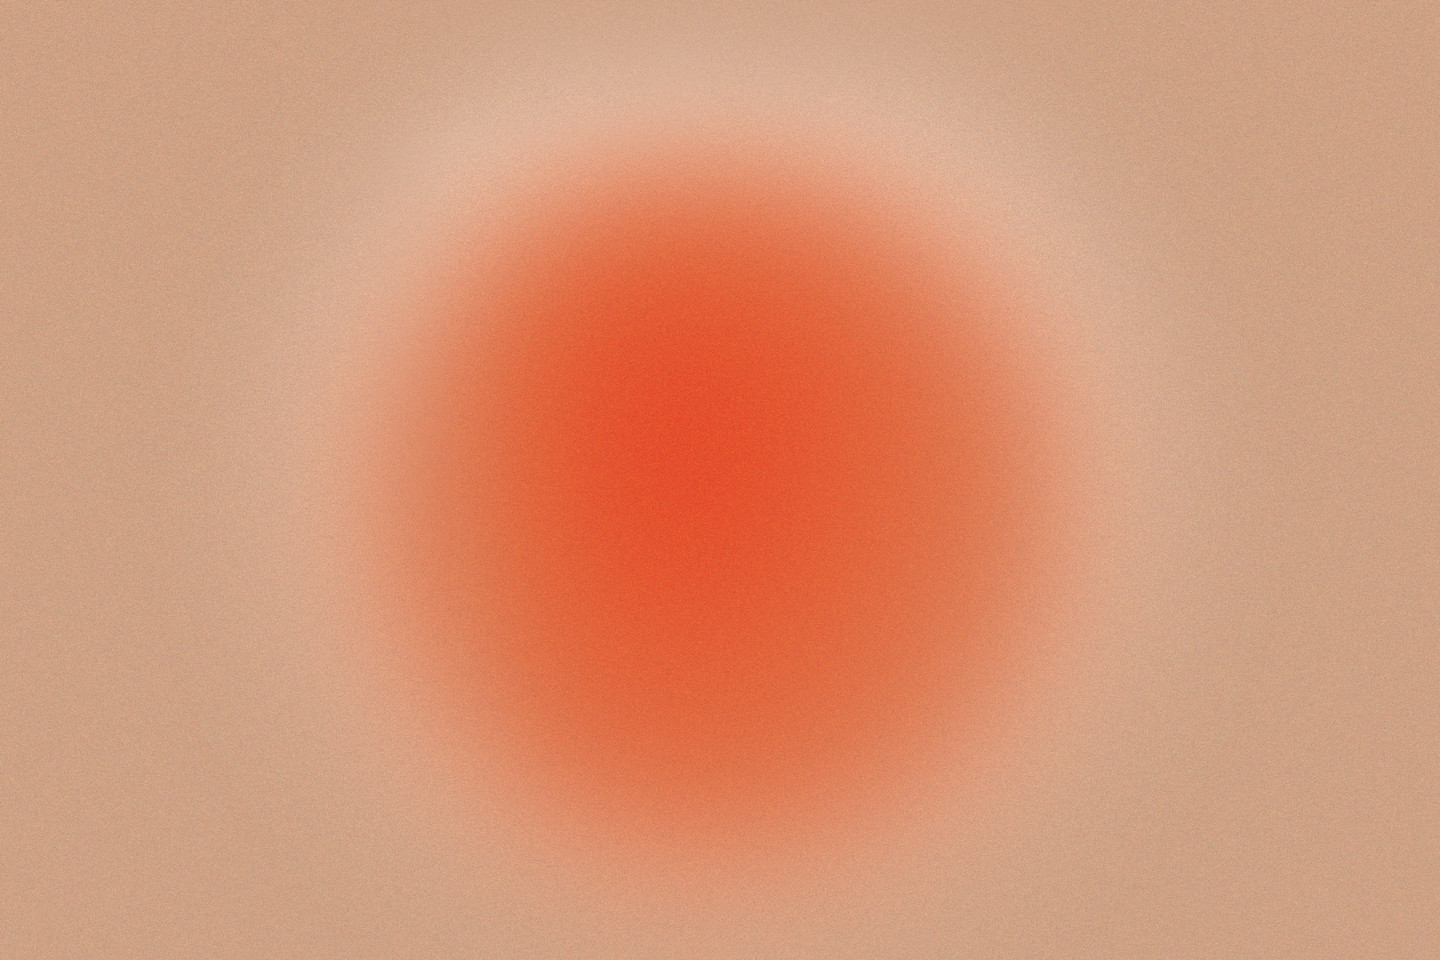 abstract image of a reddish gradient sphere on a light brown background